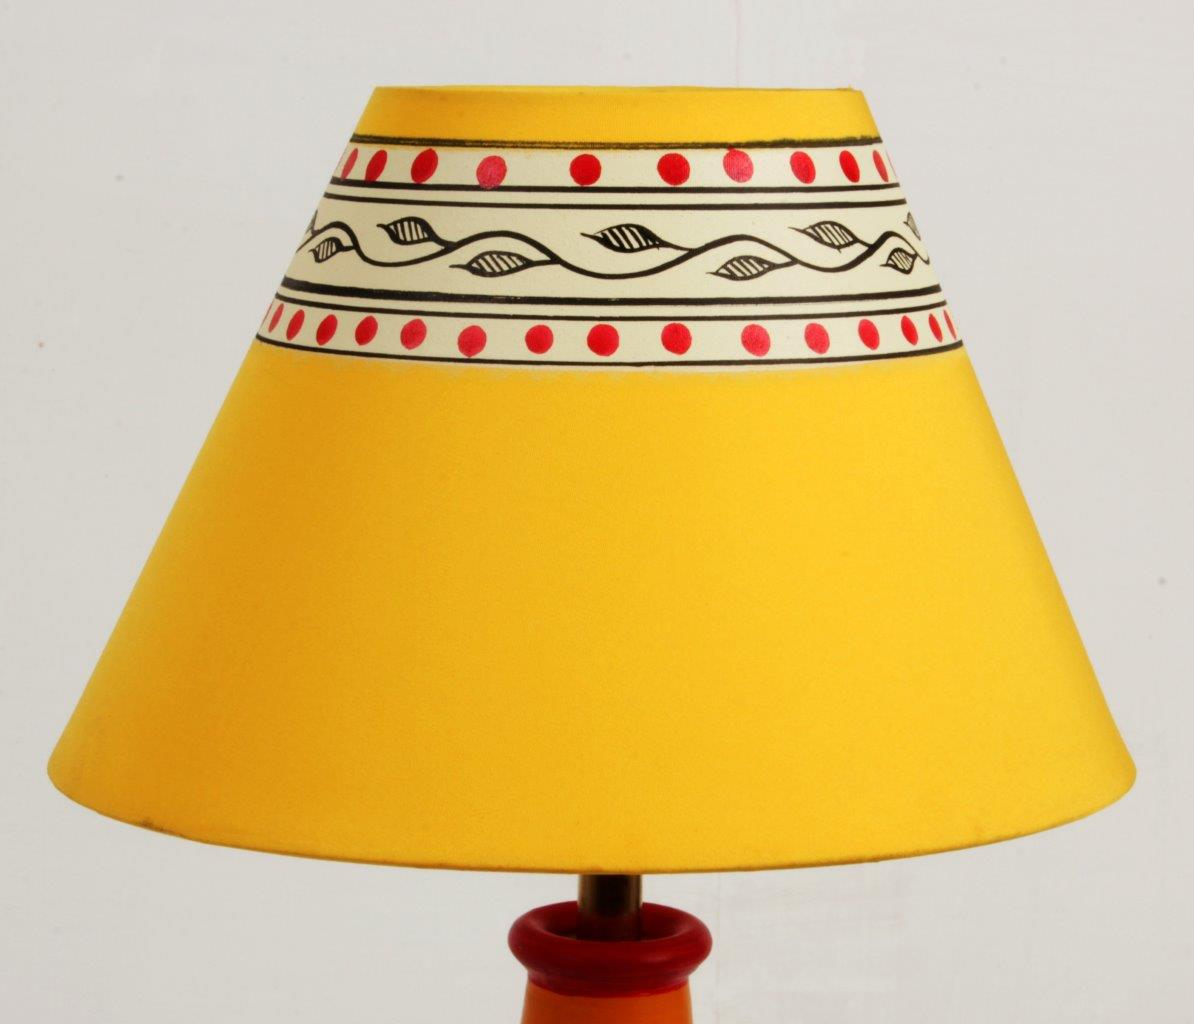 Terracotta Warli Art Flat Pot Lamp